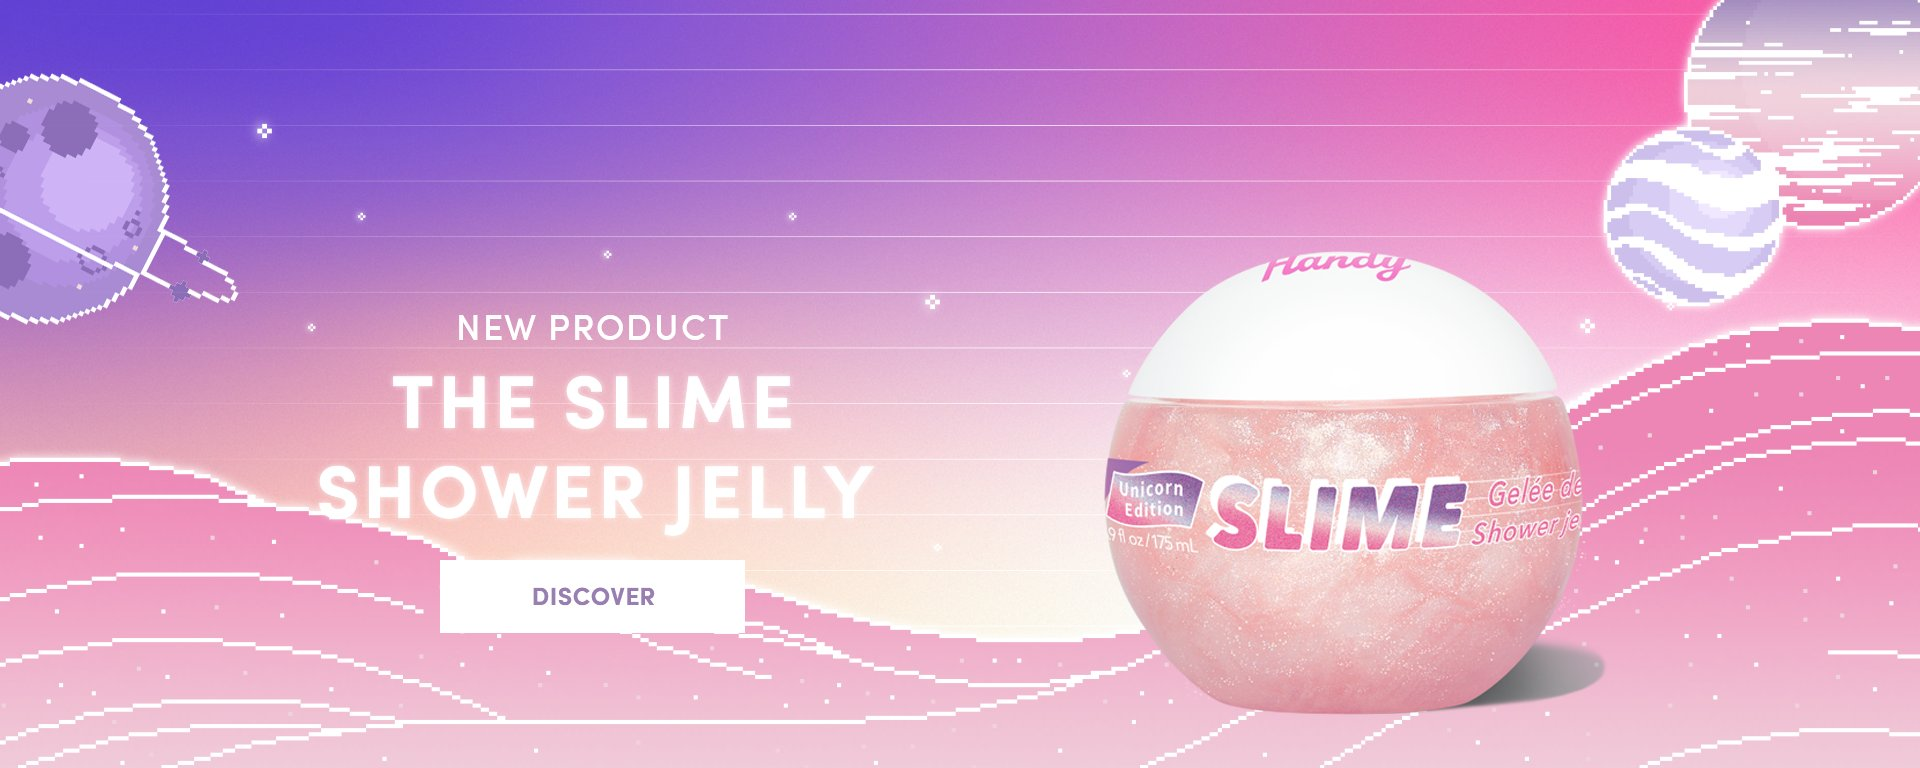 the slime shower jelly